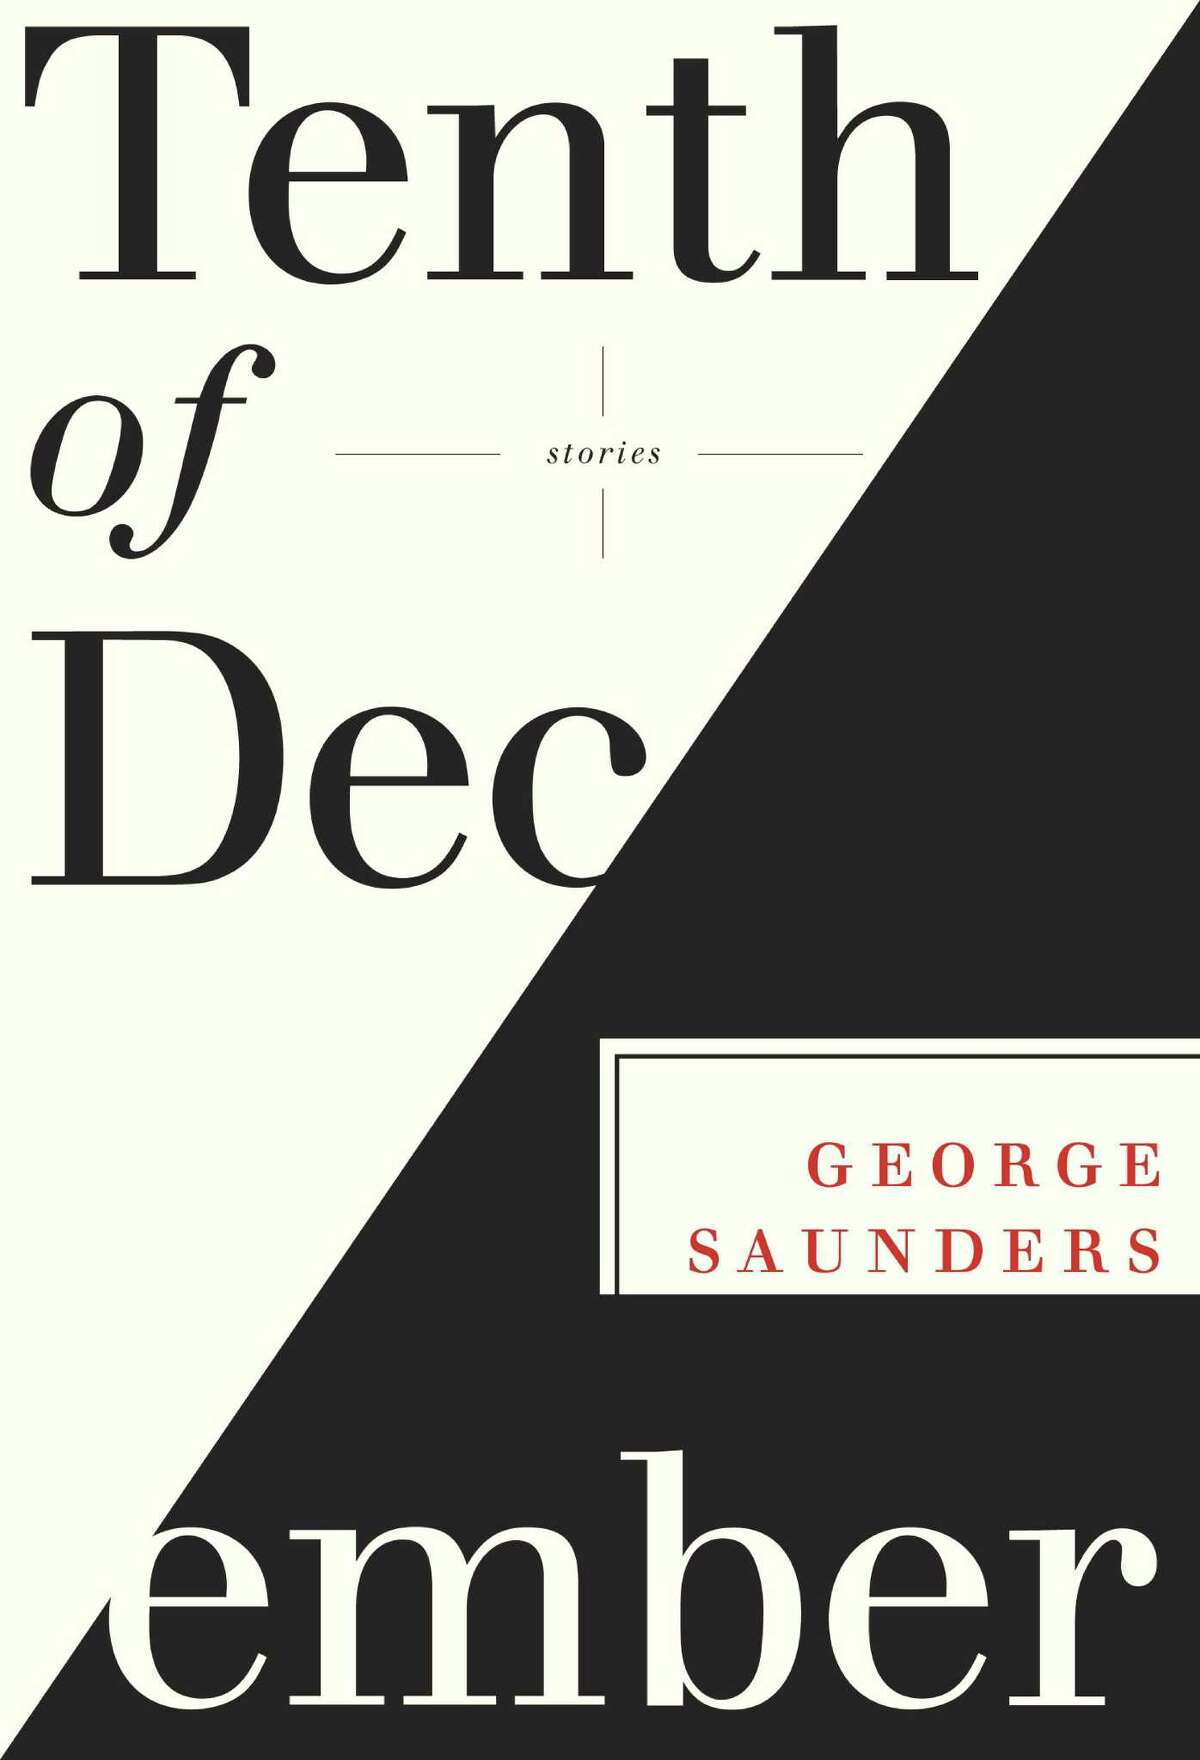 Author George Saunders wrote